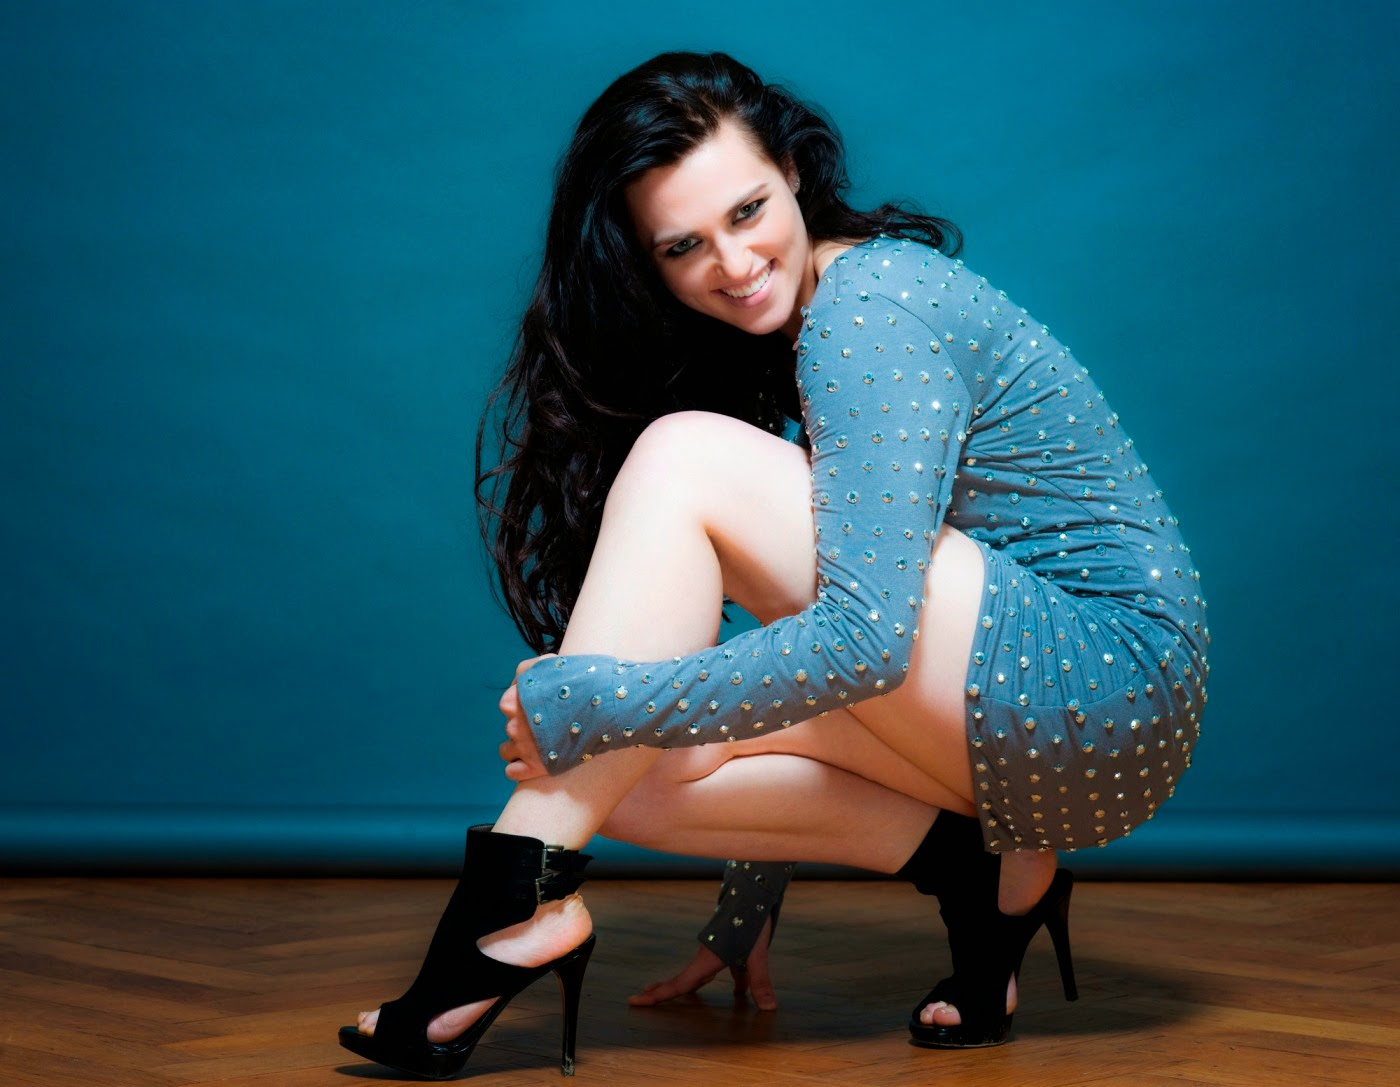 katie mcgrath hot